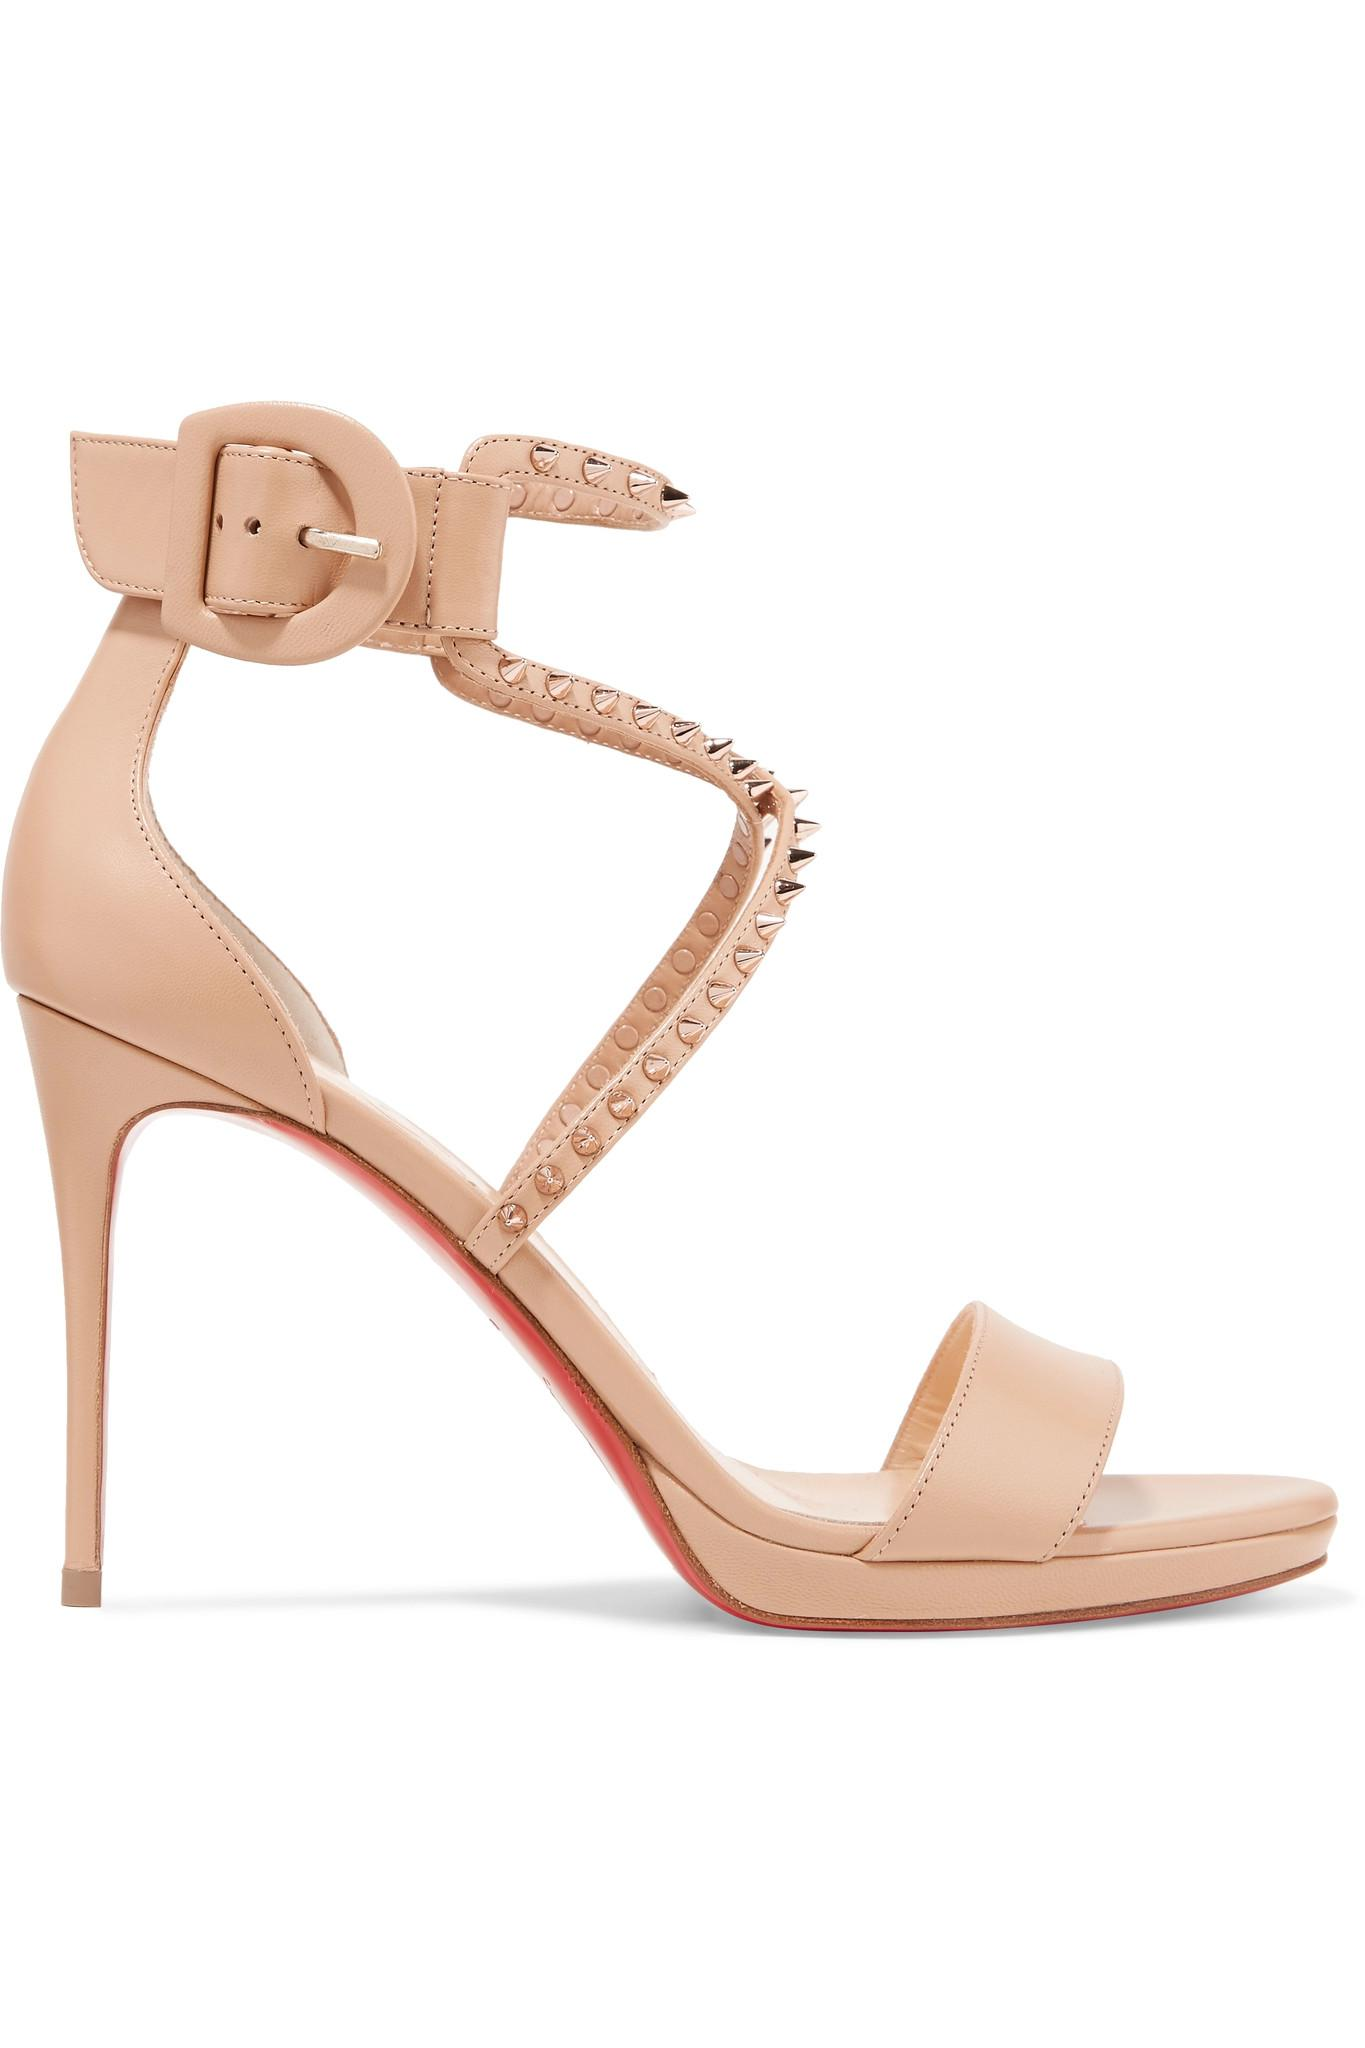 826803a1d04 Christian Louboutin. Women s Choca Lux 100 Studded Leather Sandals